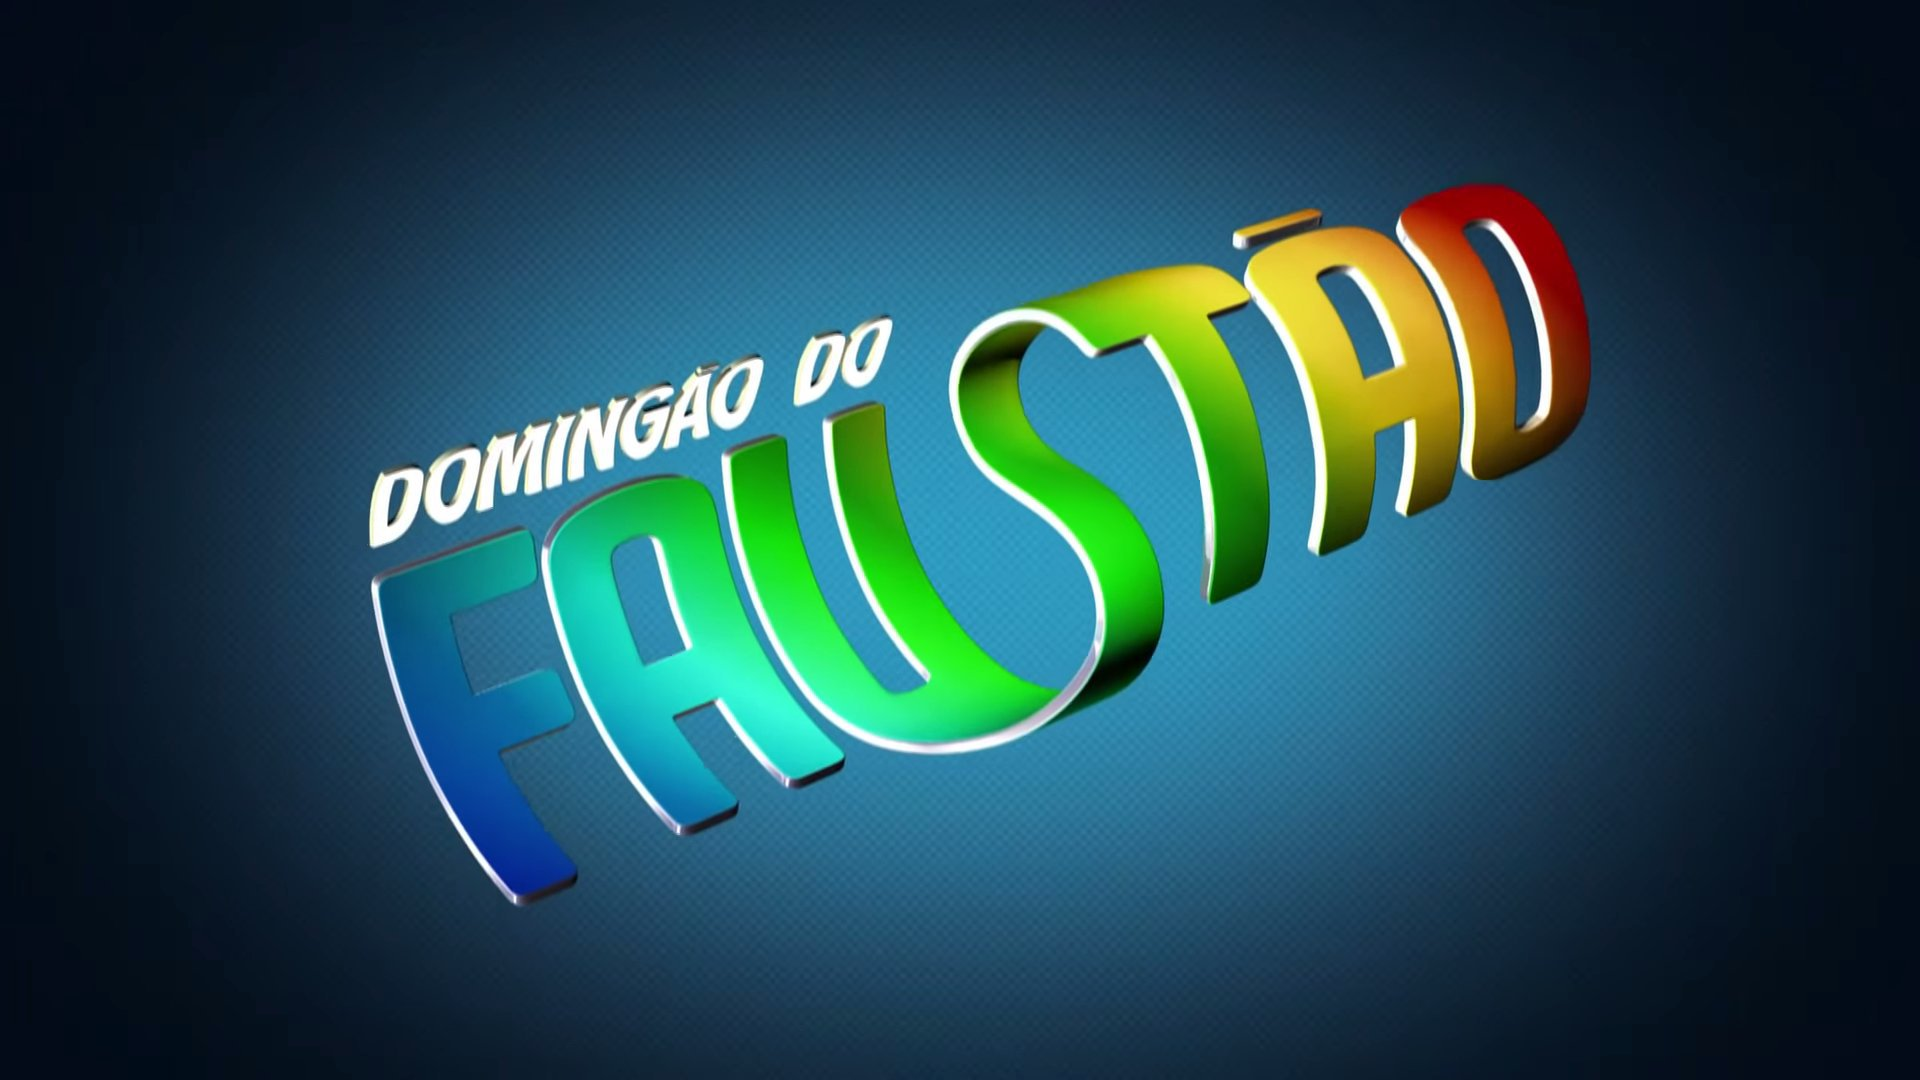 Domingão do Faustão